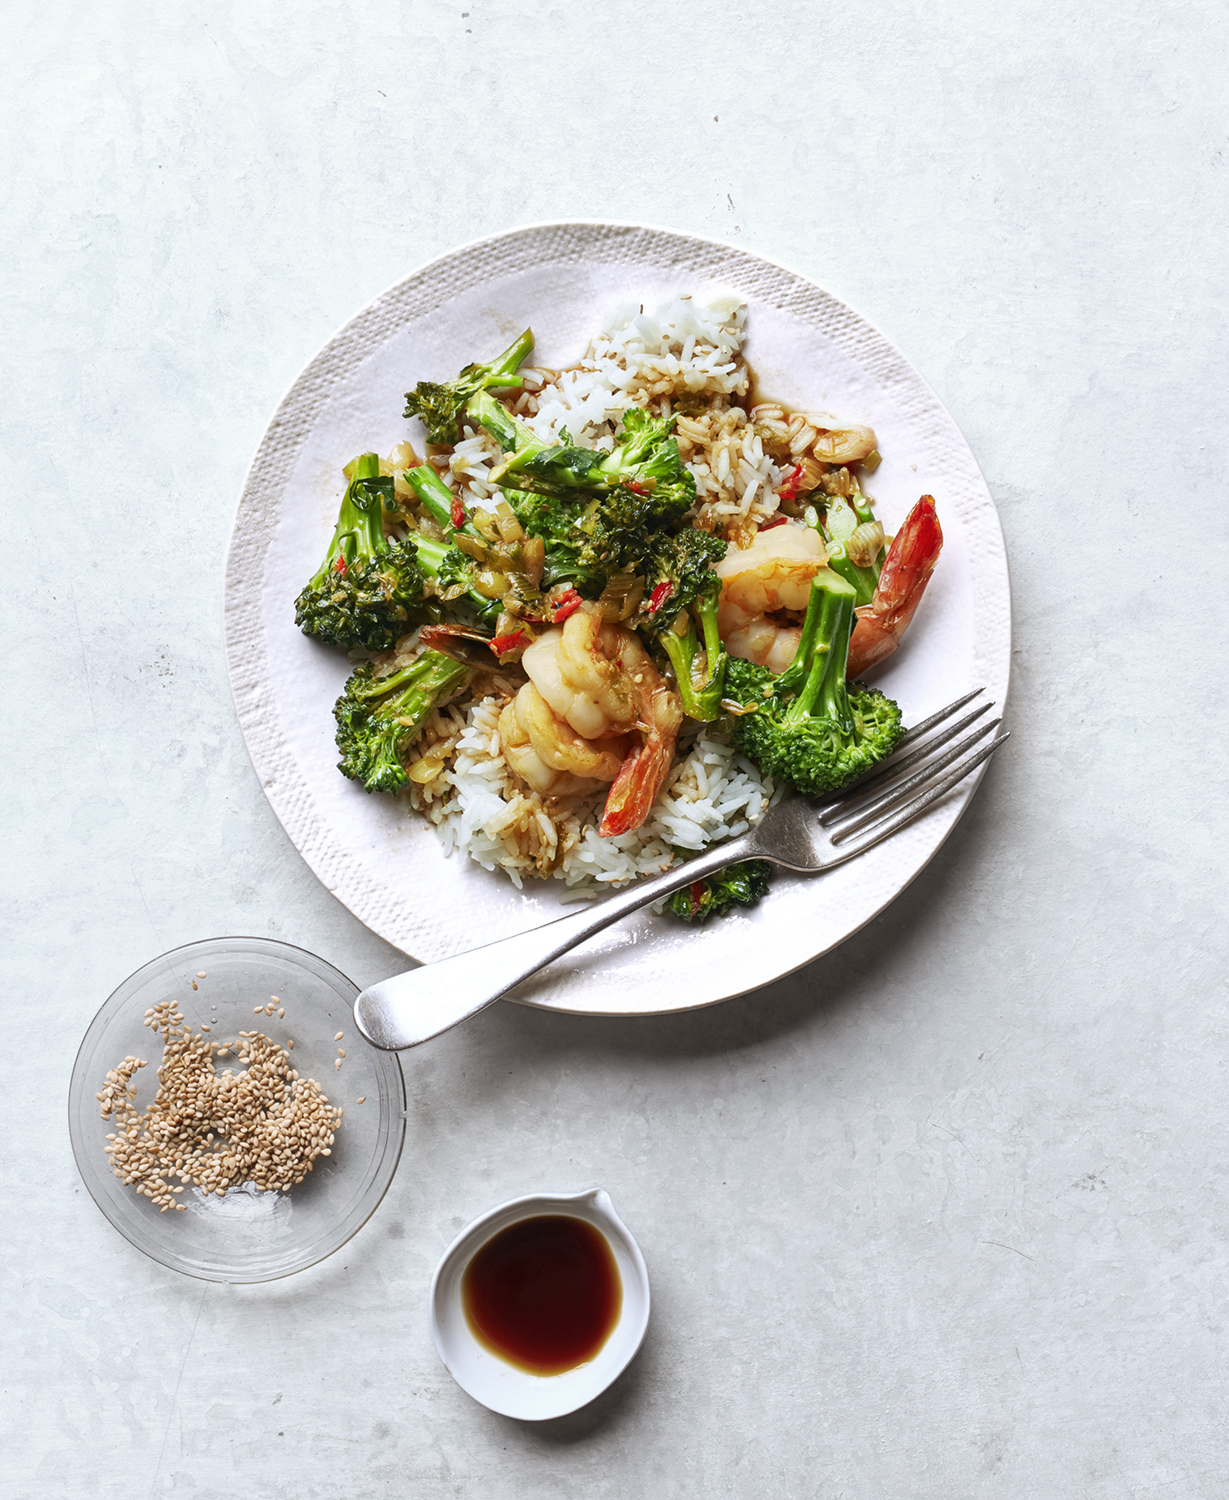 Shrimp and Broccolini Stir-Fry With Sesame Rice